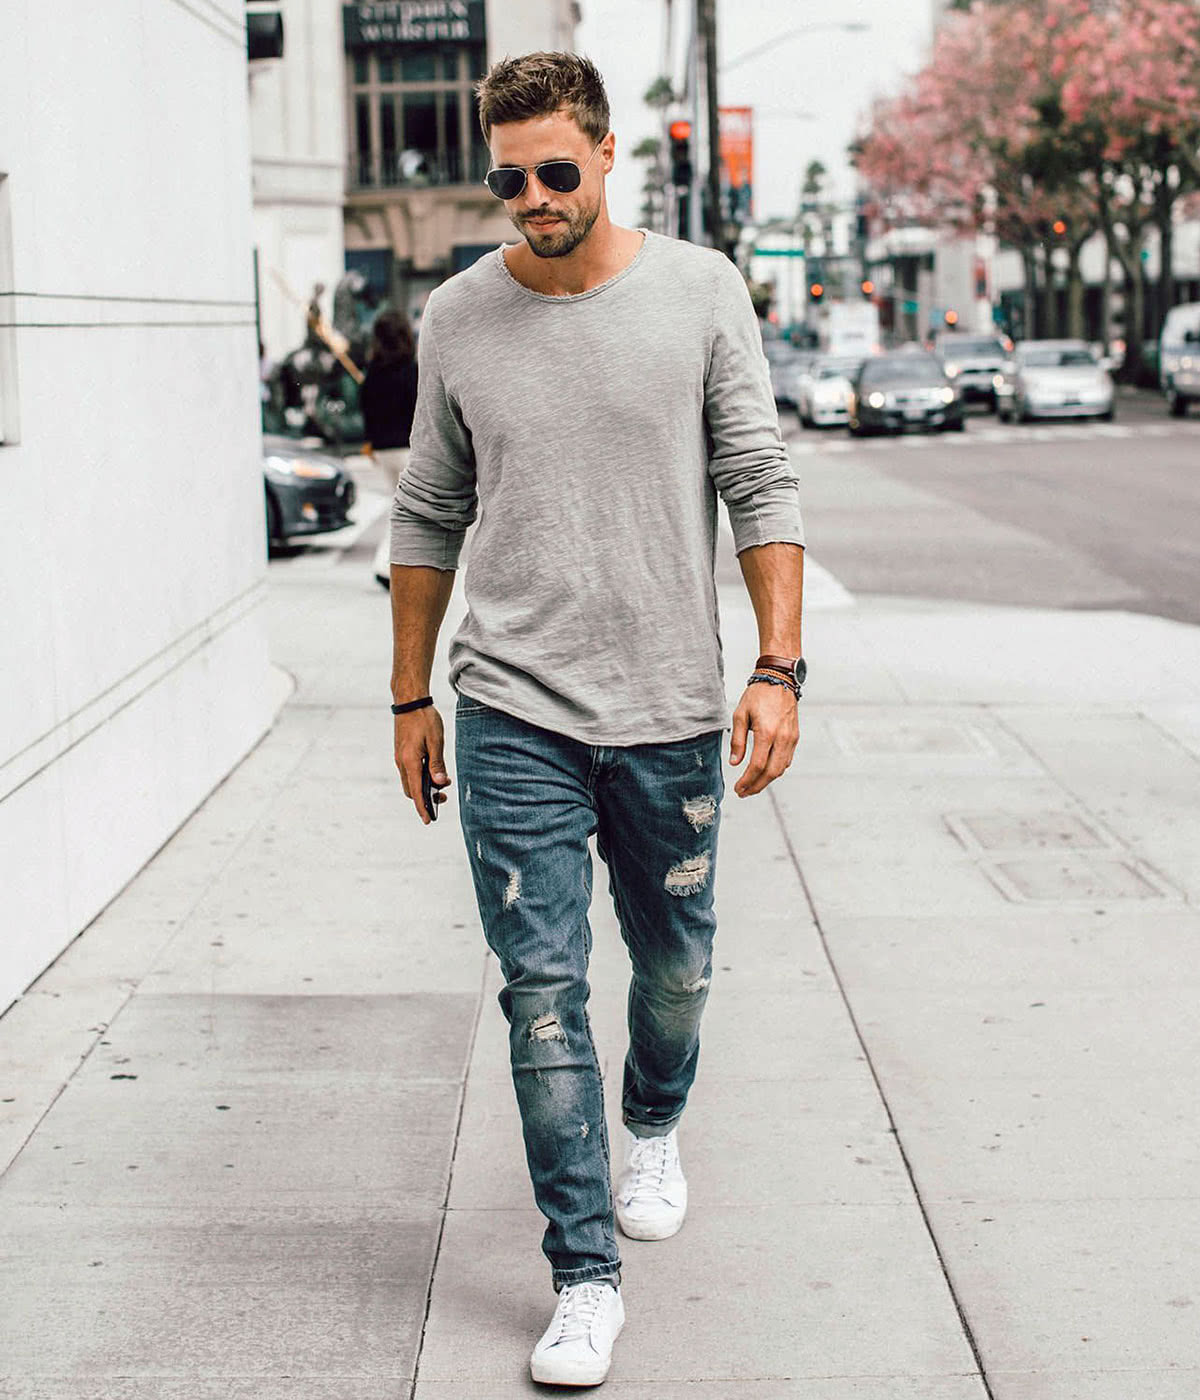 Casual dress code men street style - Luxe Digital